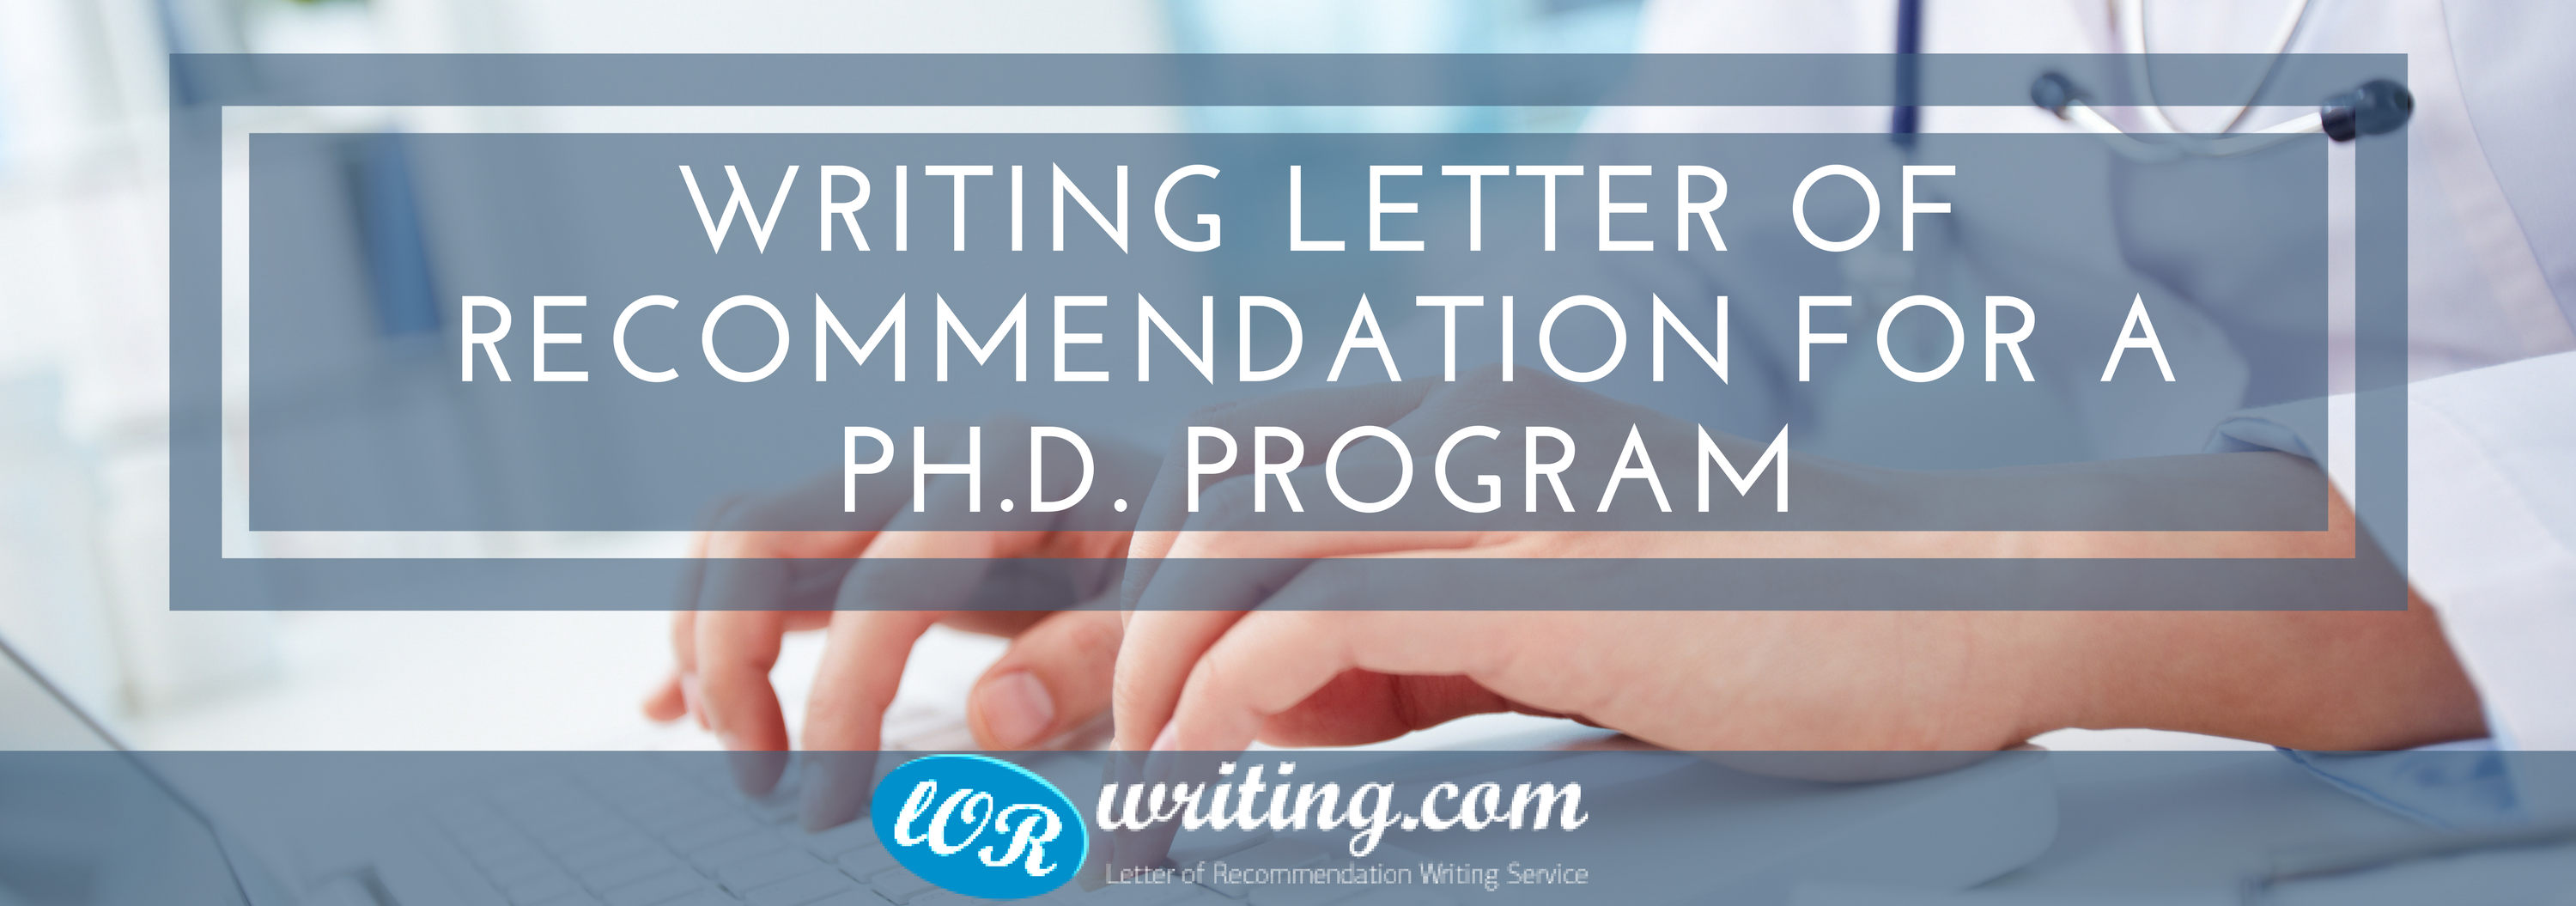 writing letter of recommendation for phd